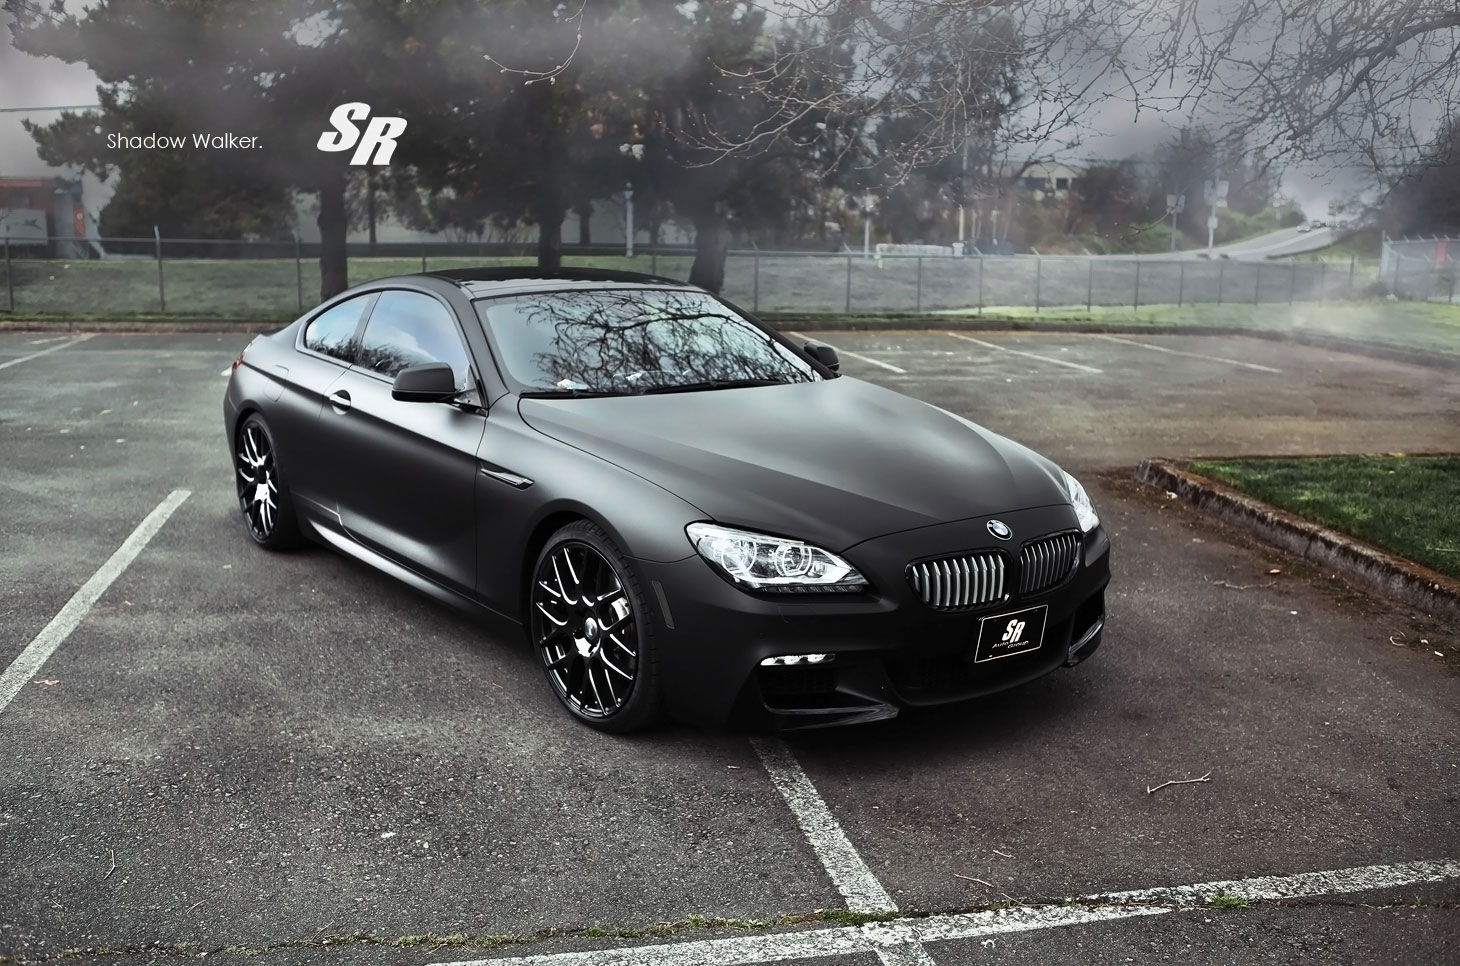 BMW 650i jako Shadow Walker 3